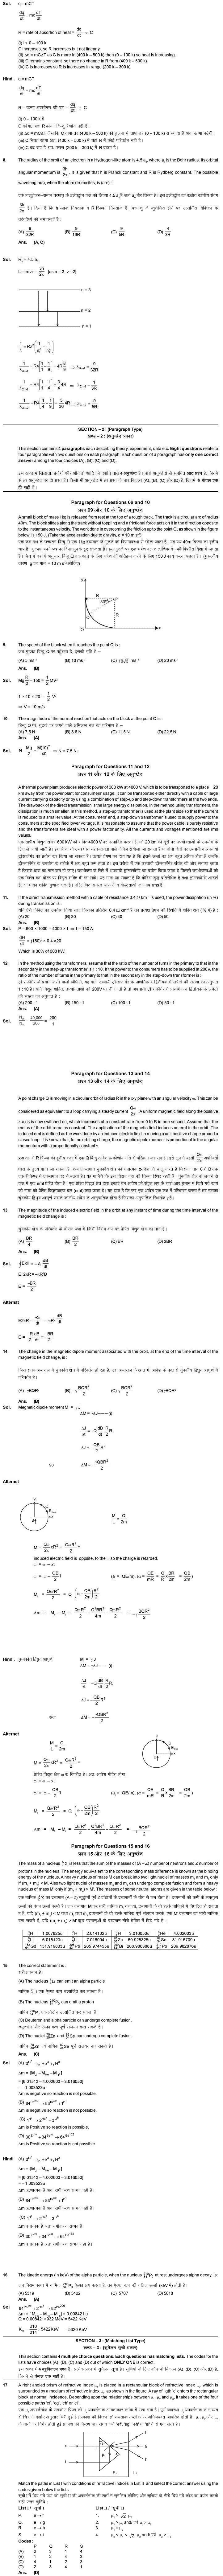 JEE Advanced 2013 Paper 2 Solutions   jee advanced  Image